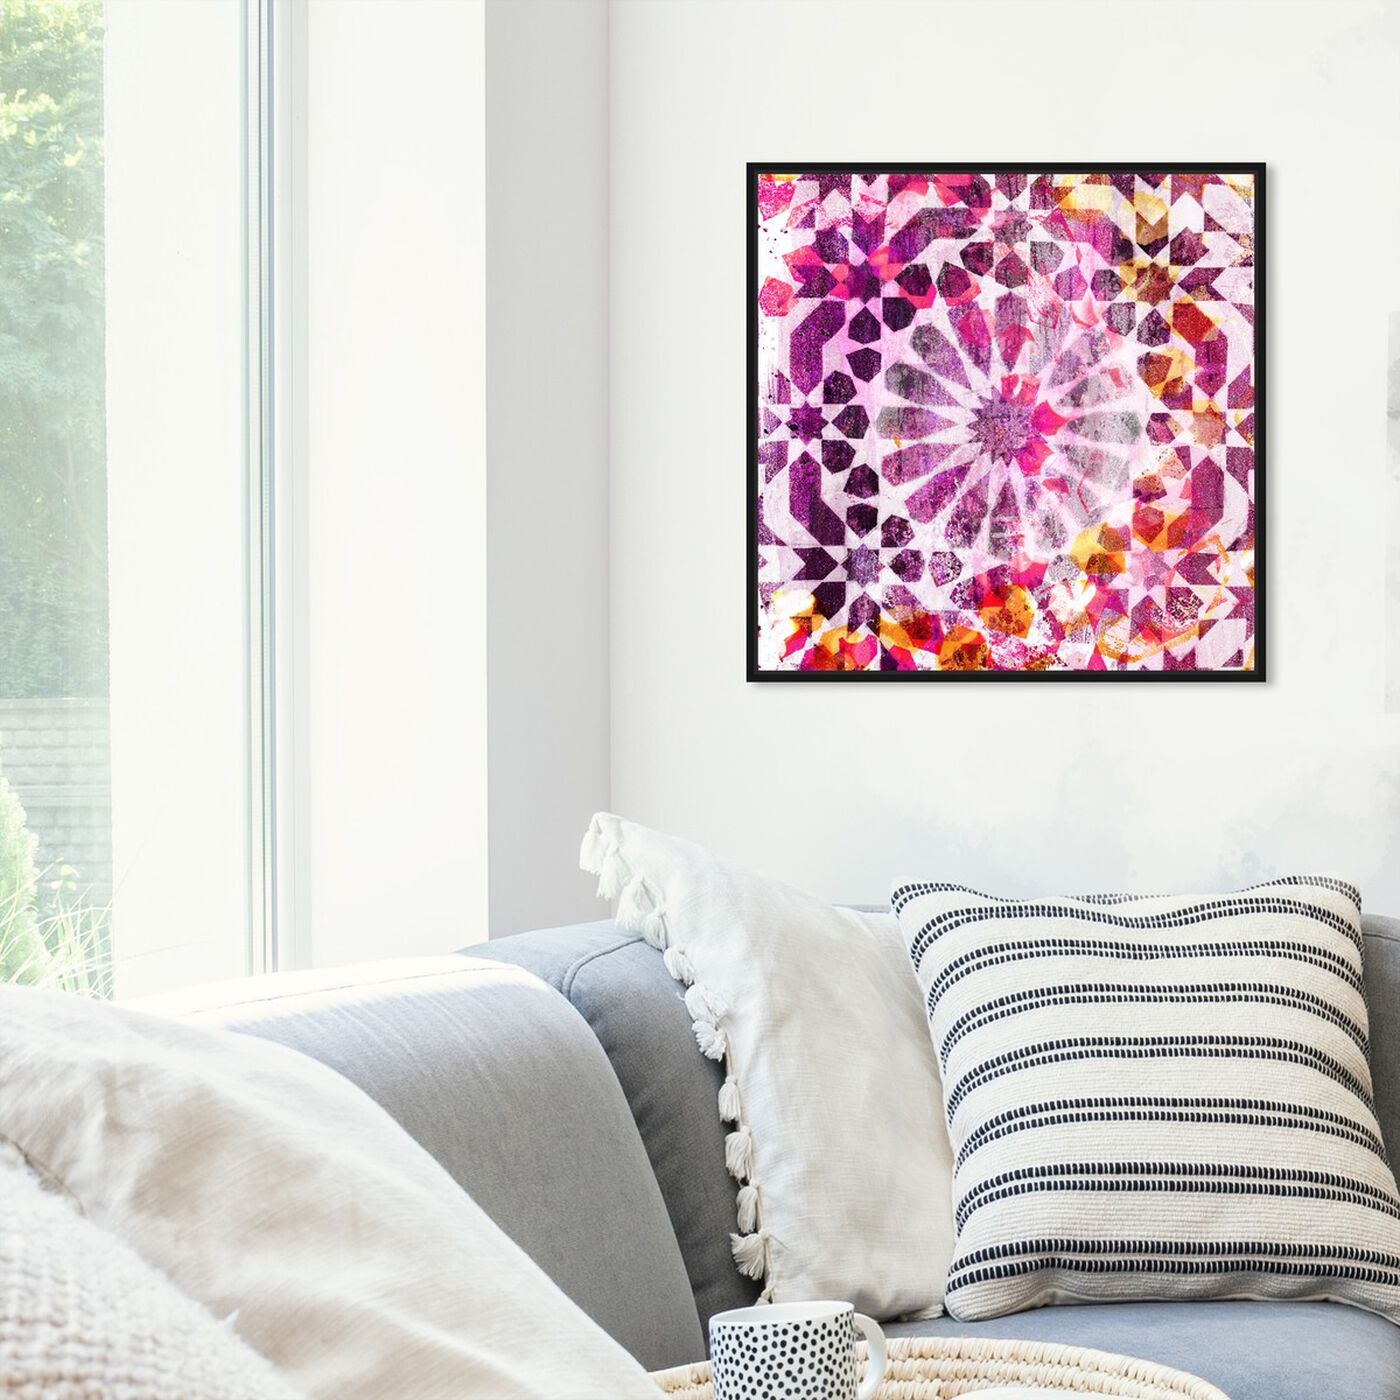 Hanging view of Majid Pink featuring abstract and patterns art.